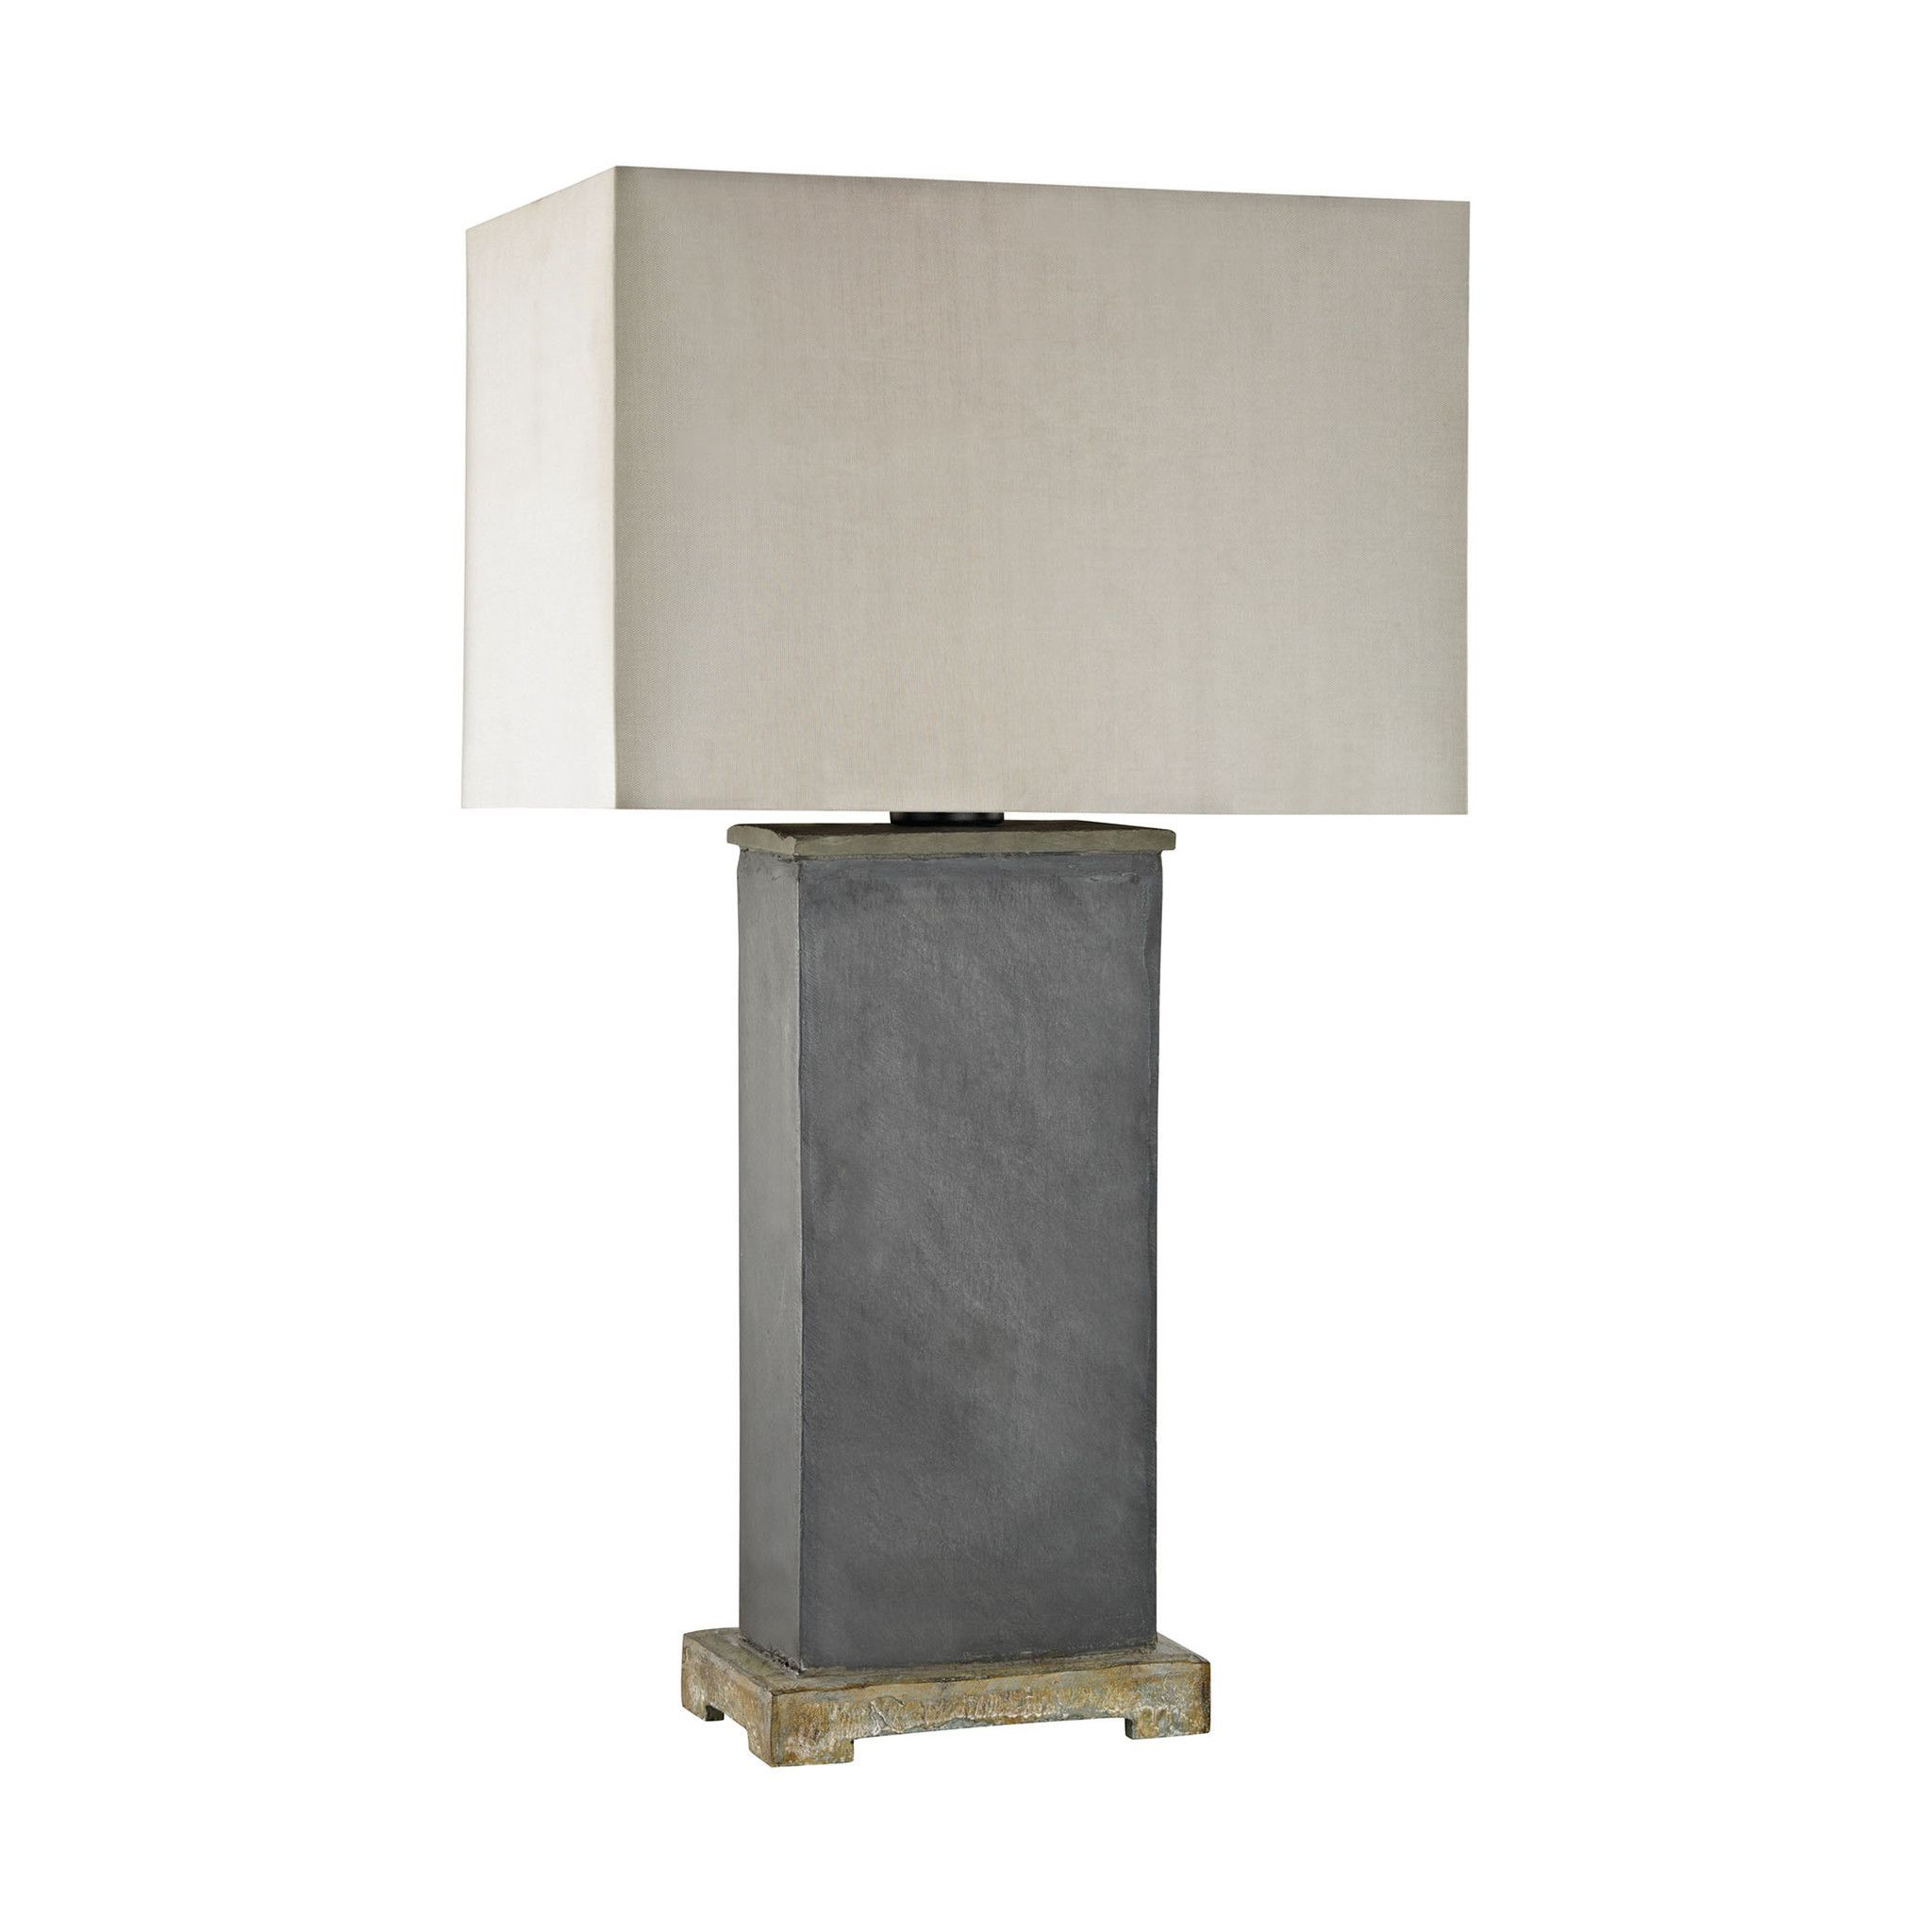 elliot bay outdoor table lamp grey slate products outdoor table rh pinterest com au